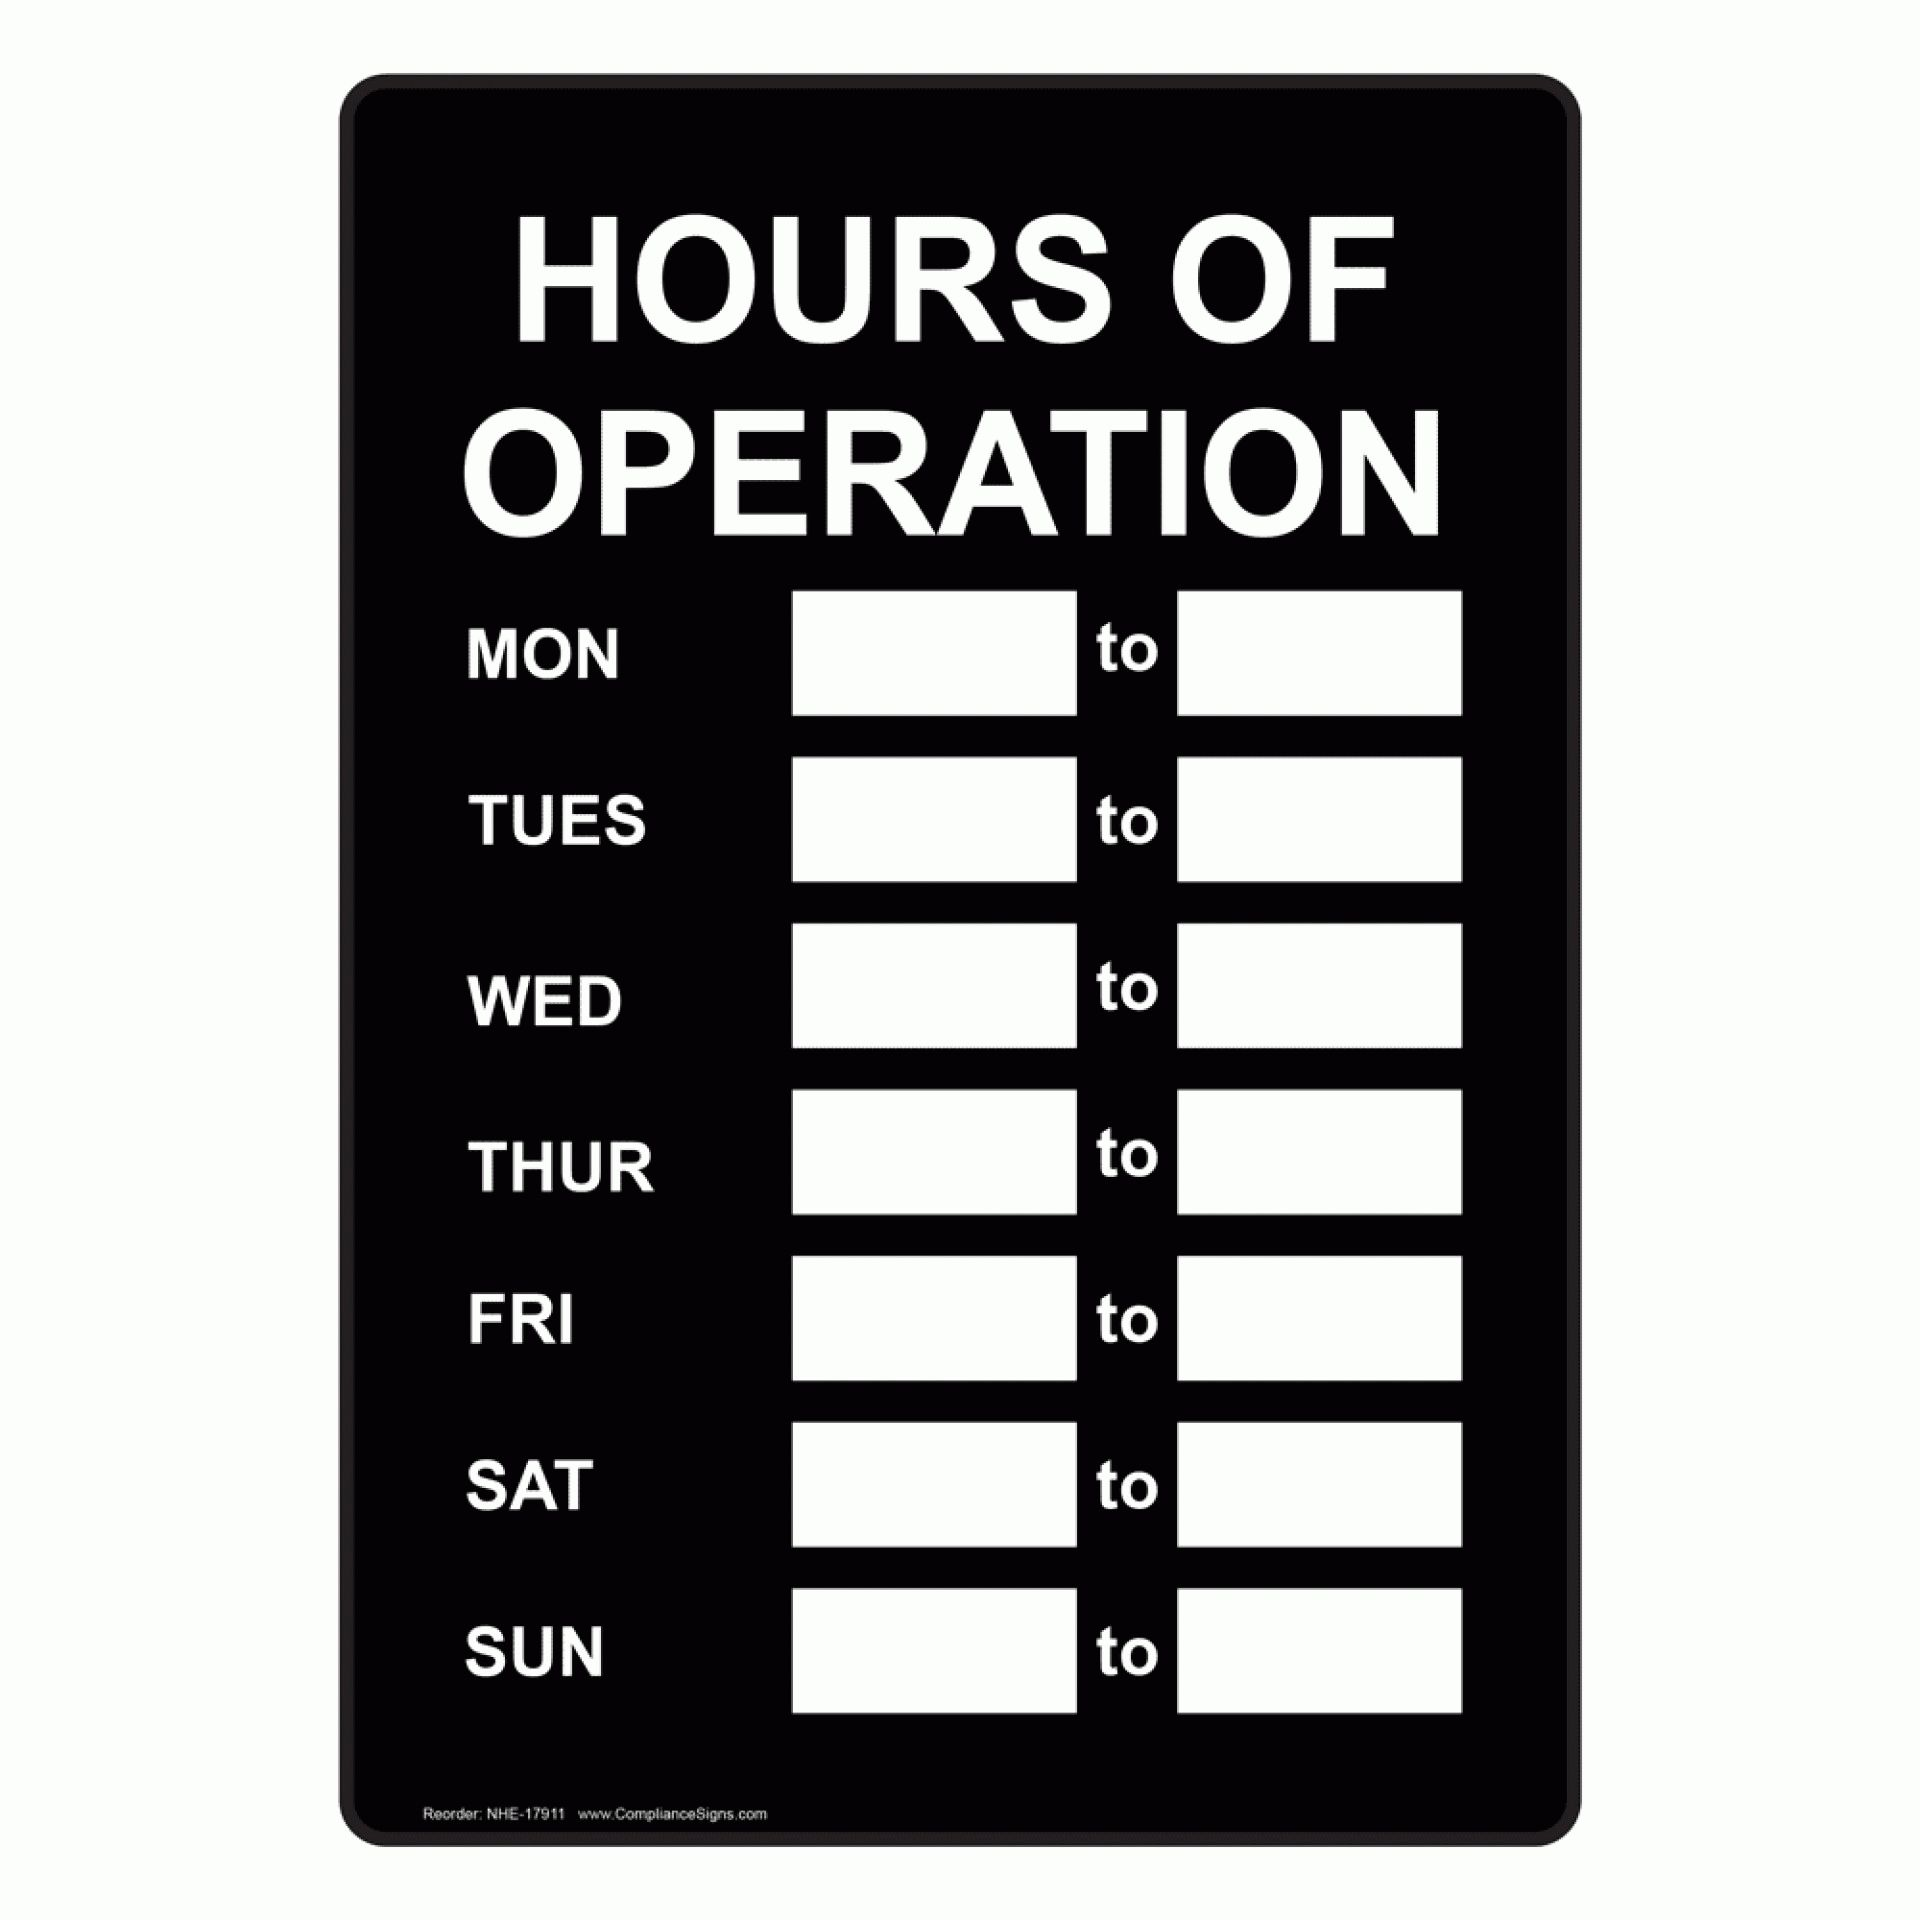 006 Hours Of Operation Template Ideas Excellent Sign Free Pertaining To Hours Of Operation Template Microsoft Word In 2021 Word Template Best Templates Sign Templates Business hours sign template free